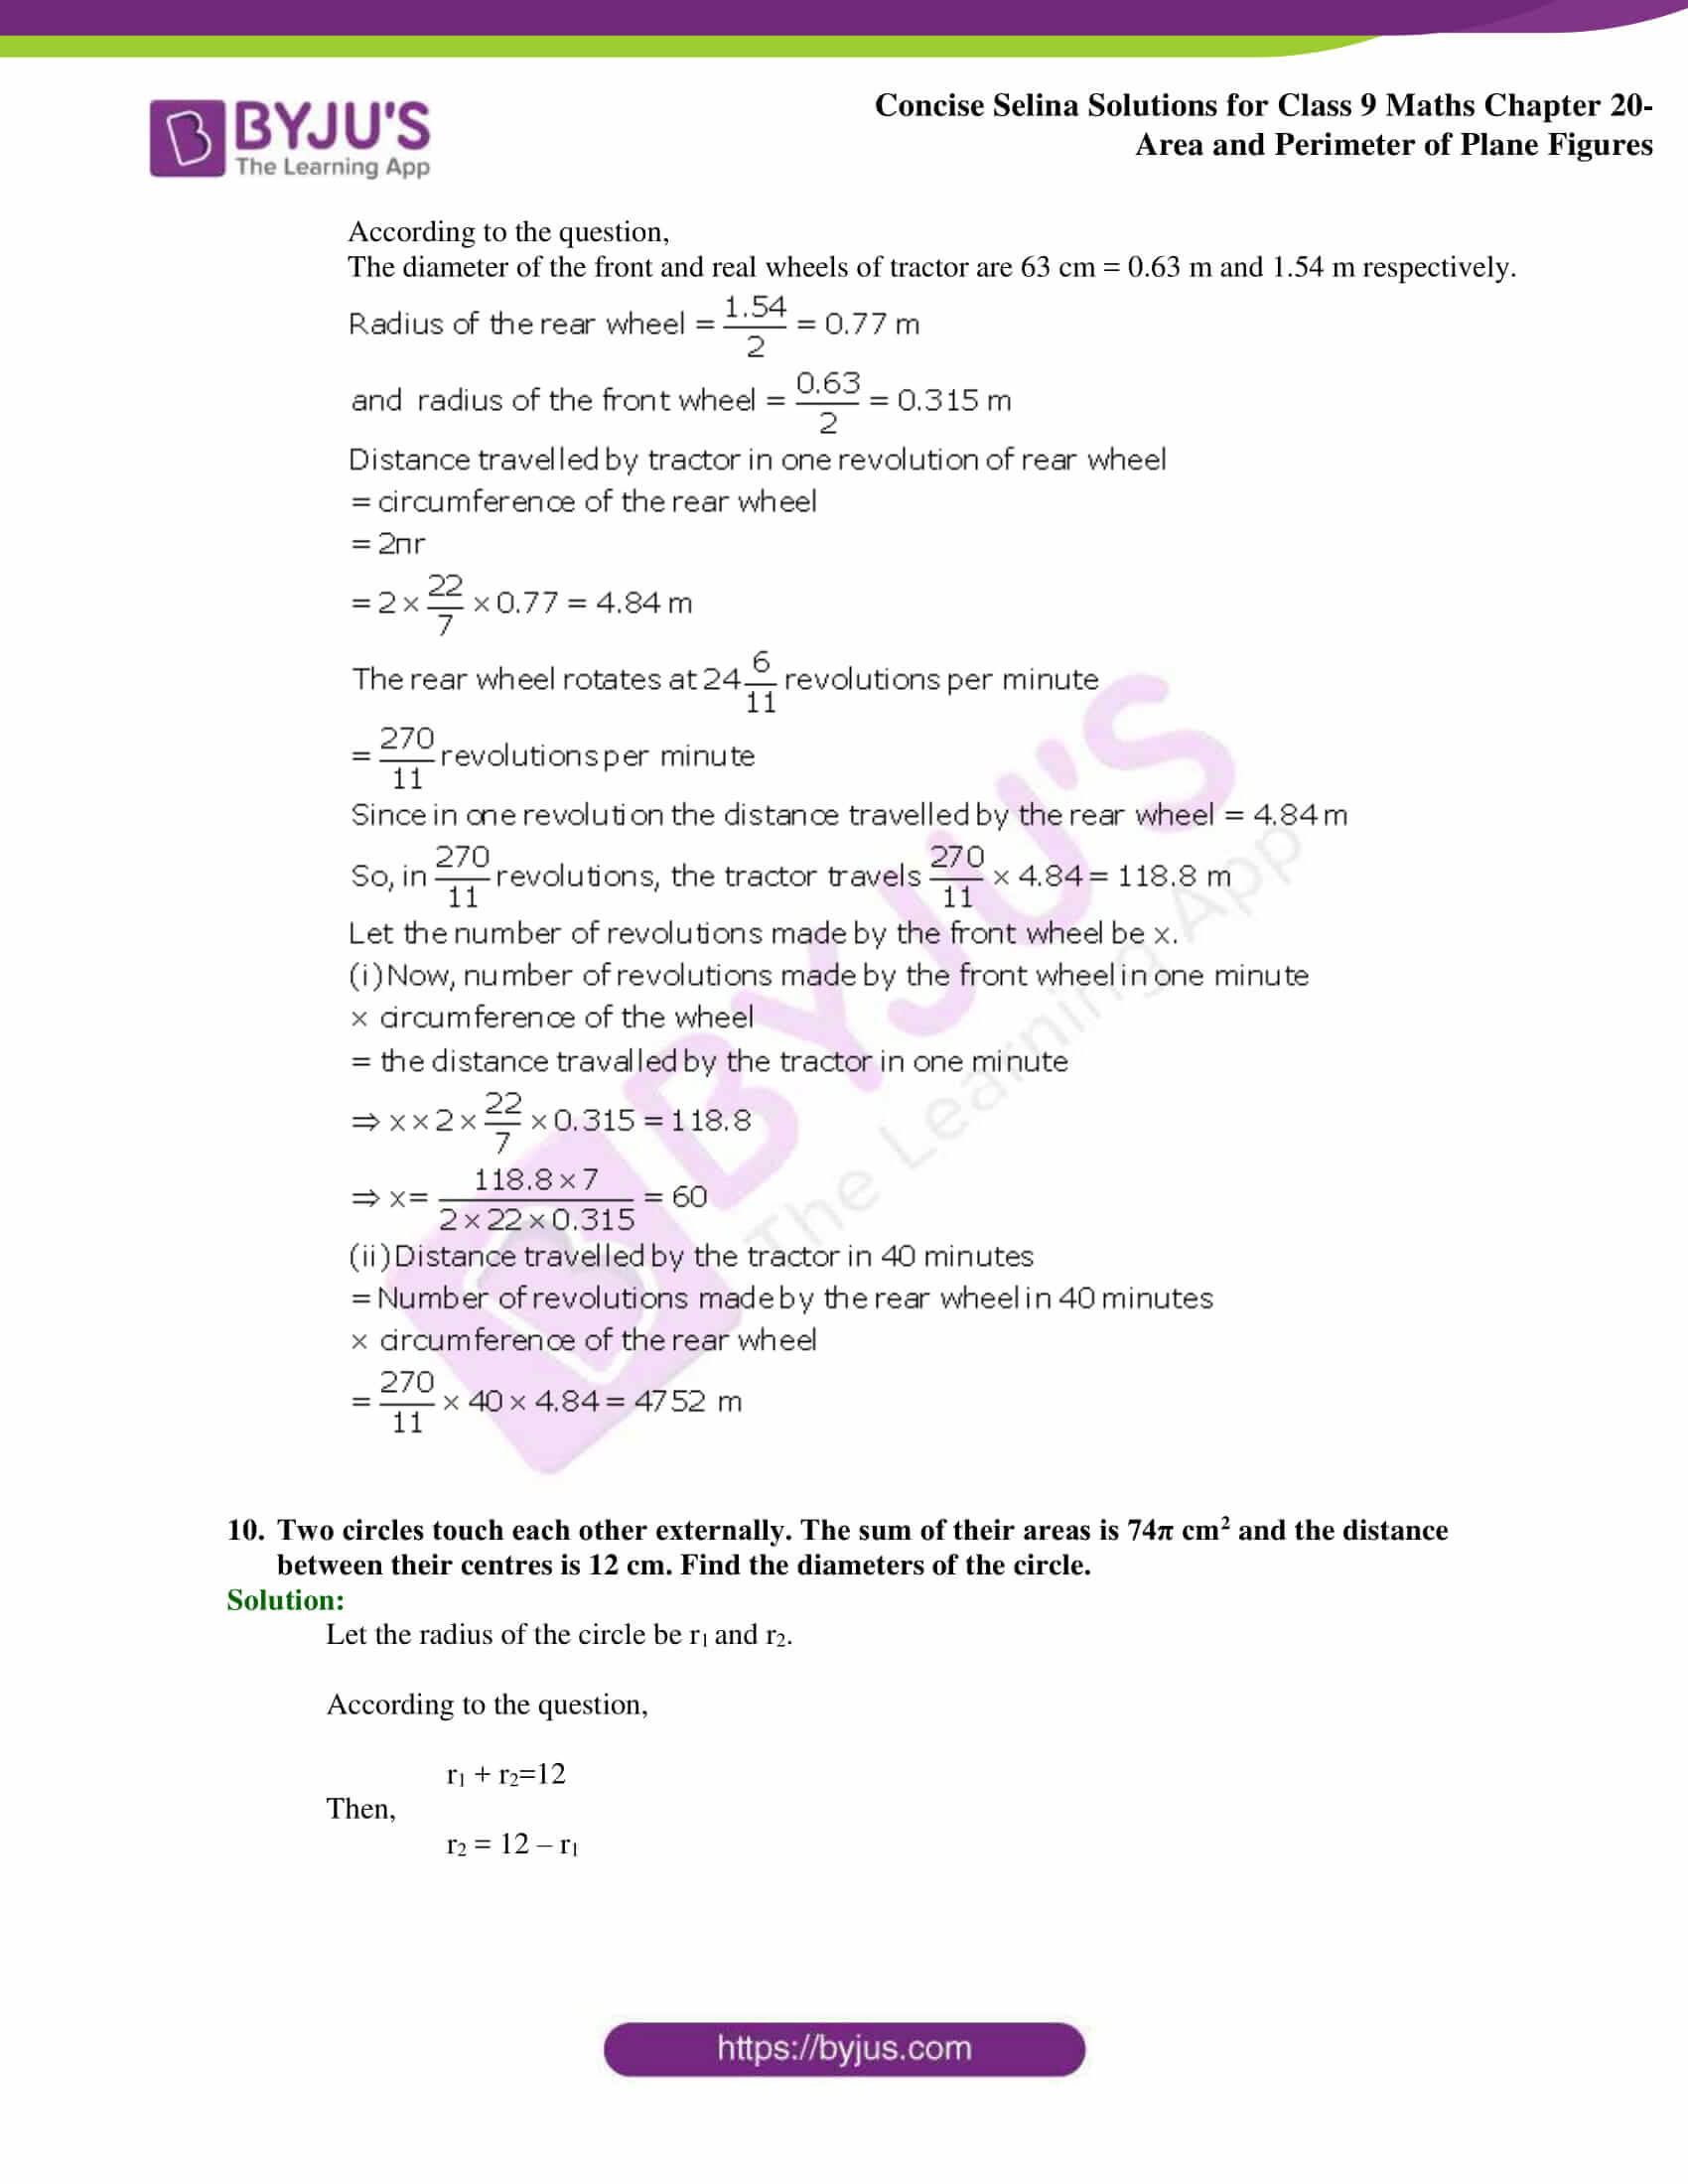 Concise Selina Solutions Class 9 Maths Chapter 20 Area and Perimeter of Plane part 49